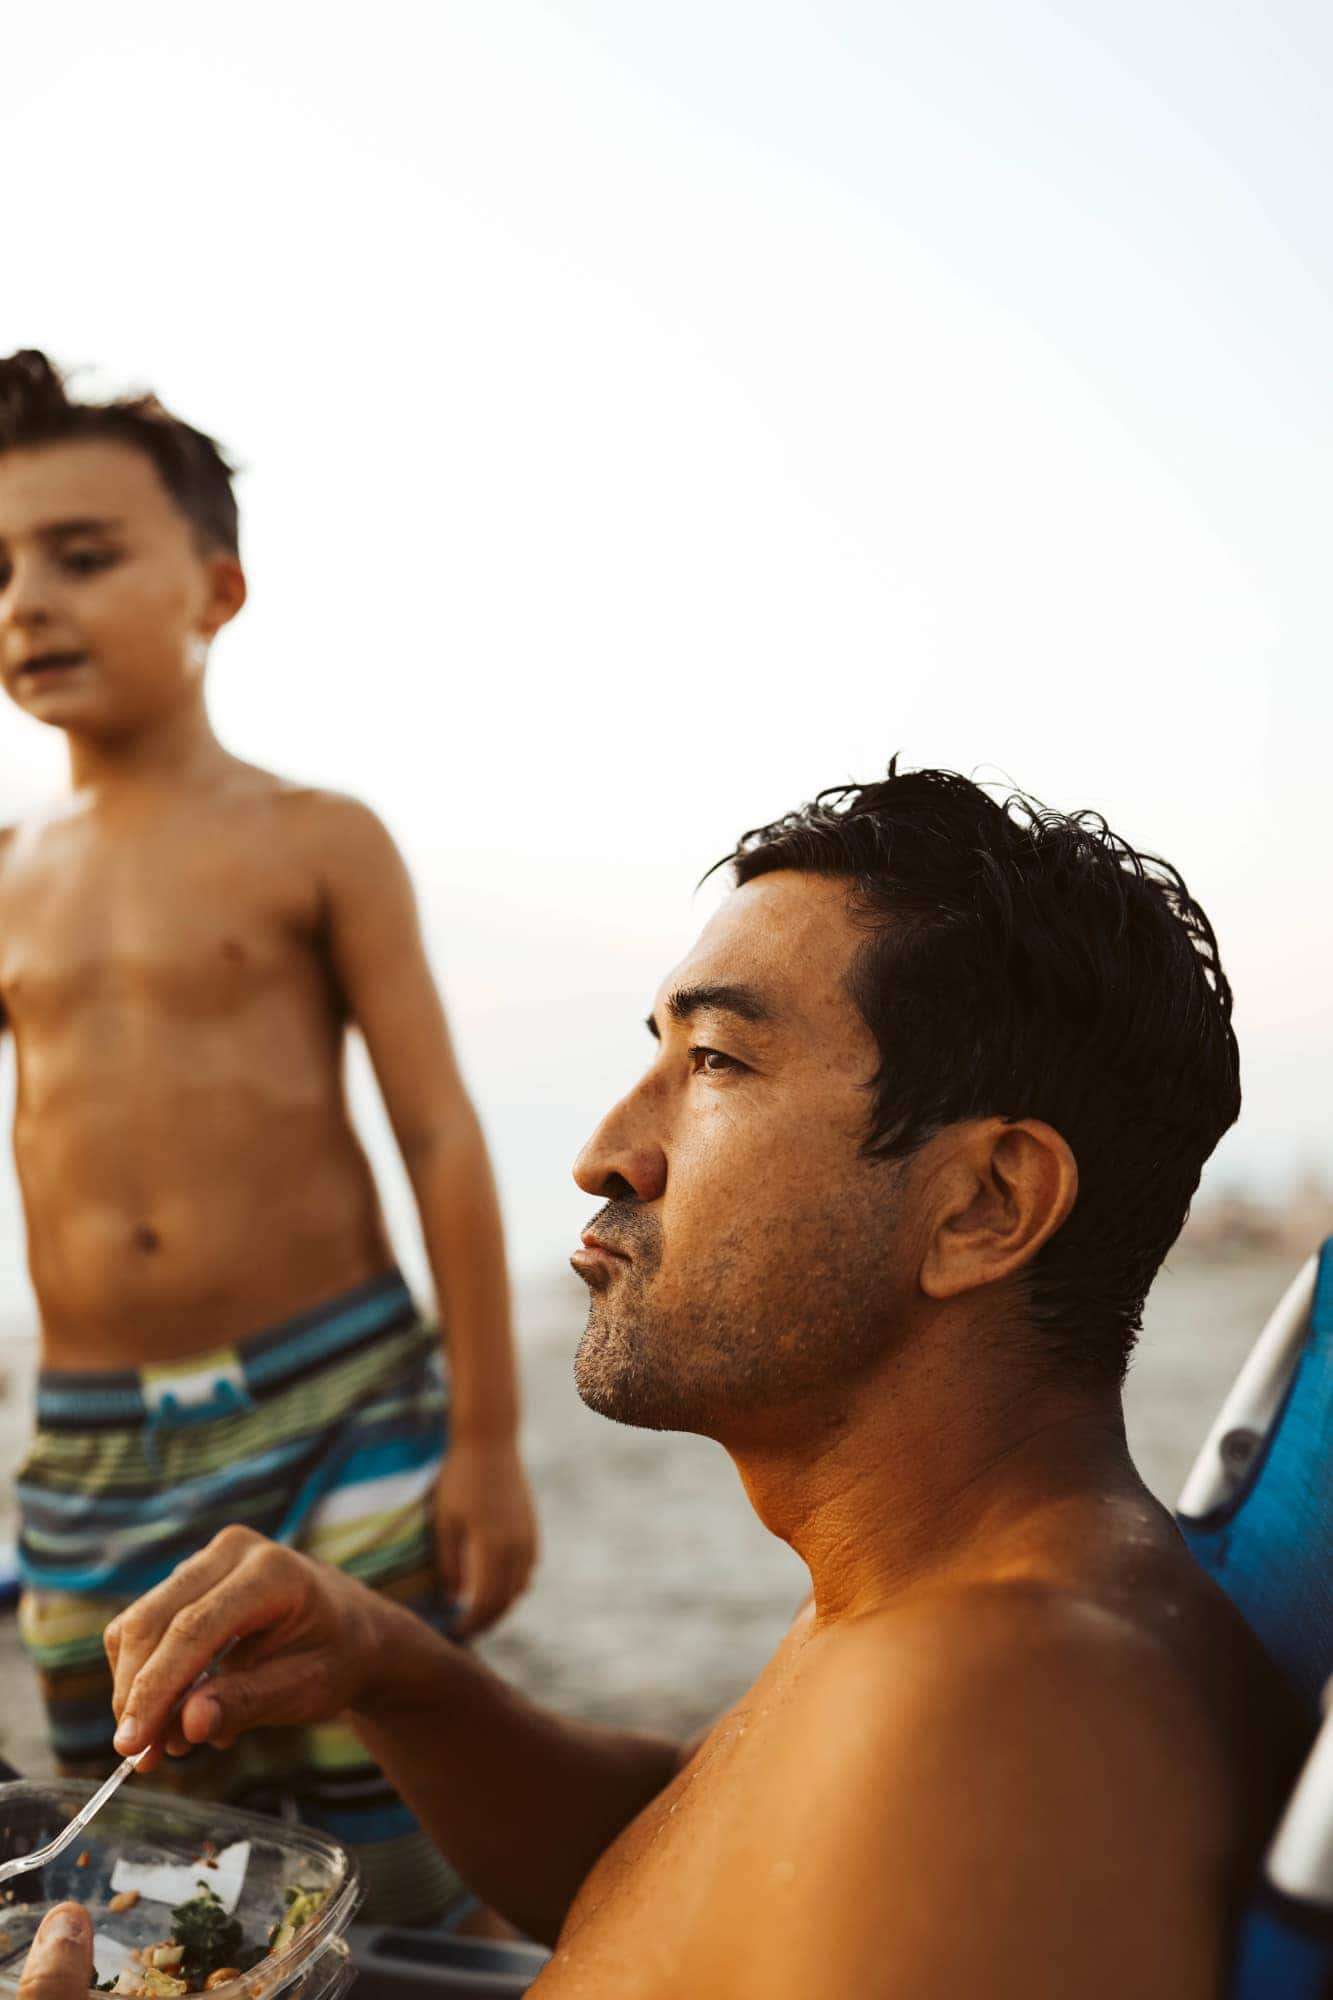 dad and child at the beach